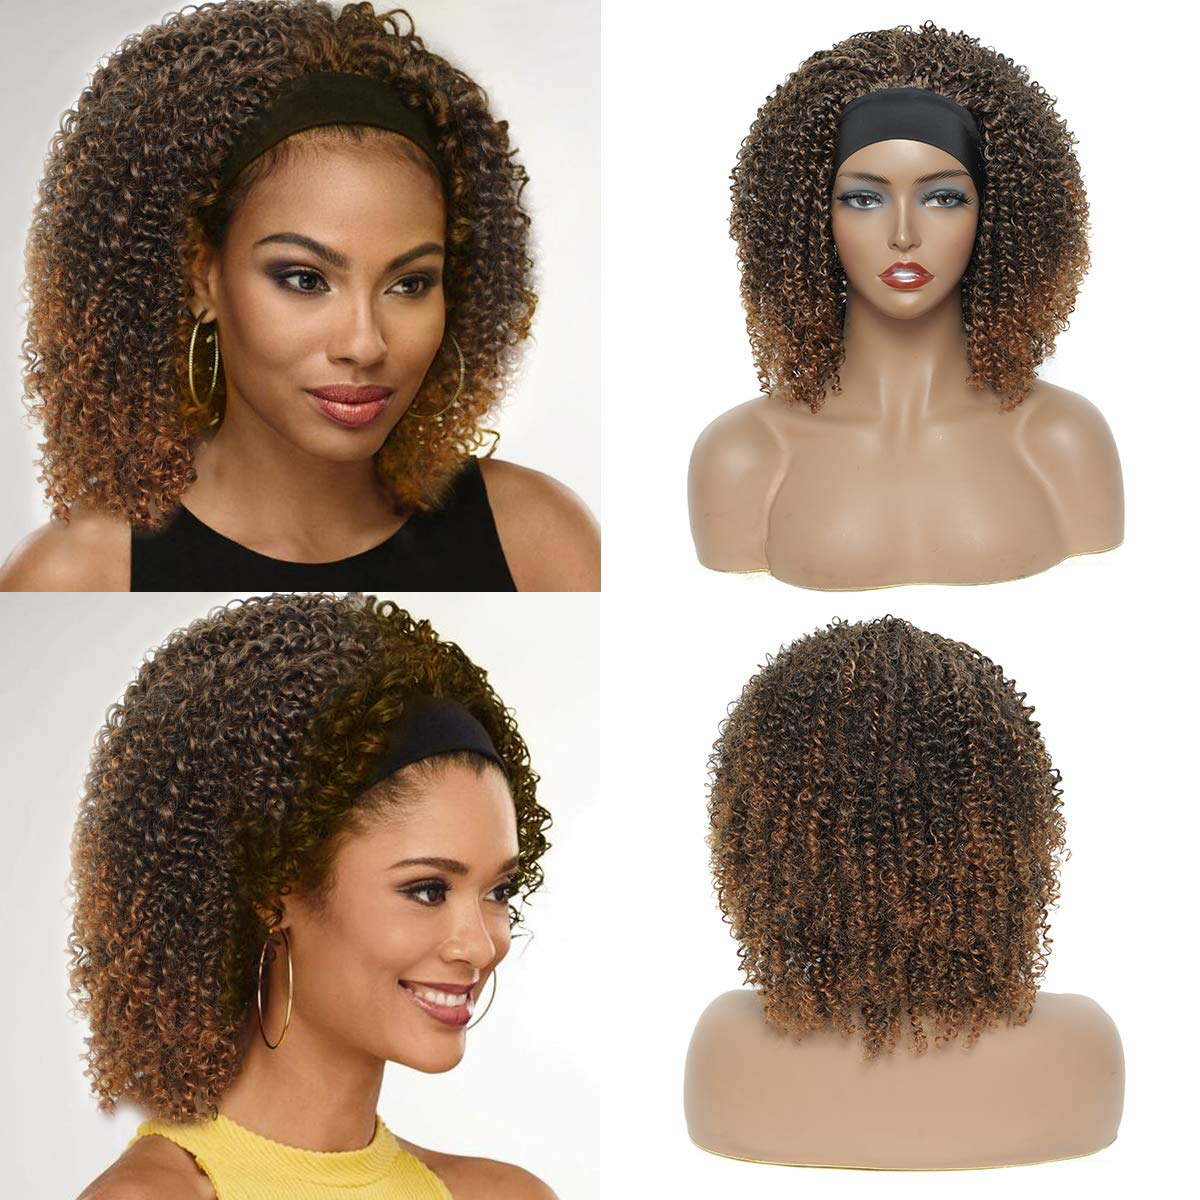 NAYOO Kinky Curly Headband Wig for Women Afro Short Curly Headband Wig Popular Ombre Synthetic Wigs with Headband Glueless None Lace Curly Wigs for Daily Use Parties and Traveling (12 inch, 1B/30)